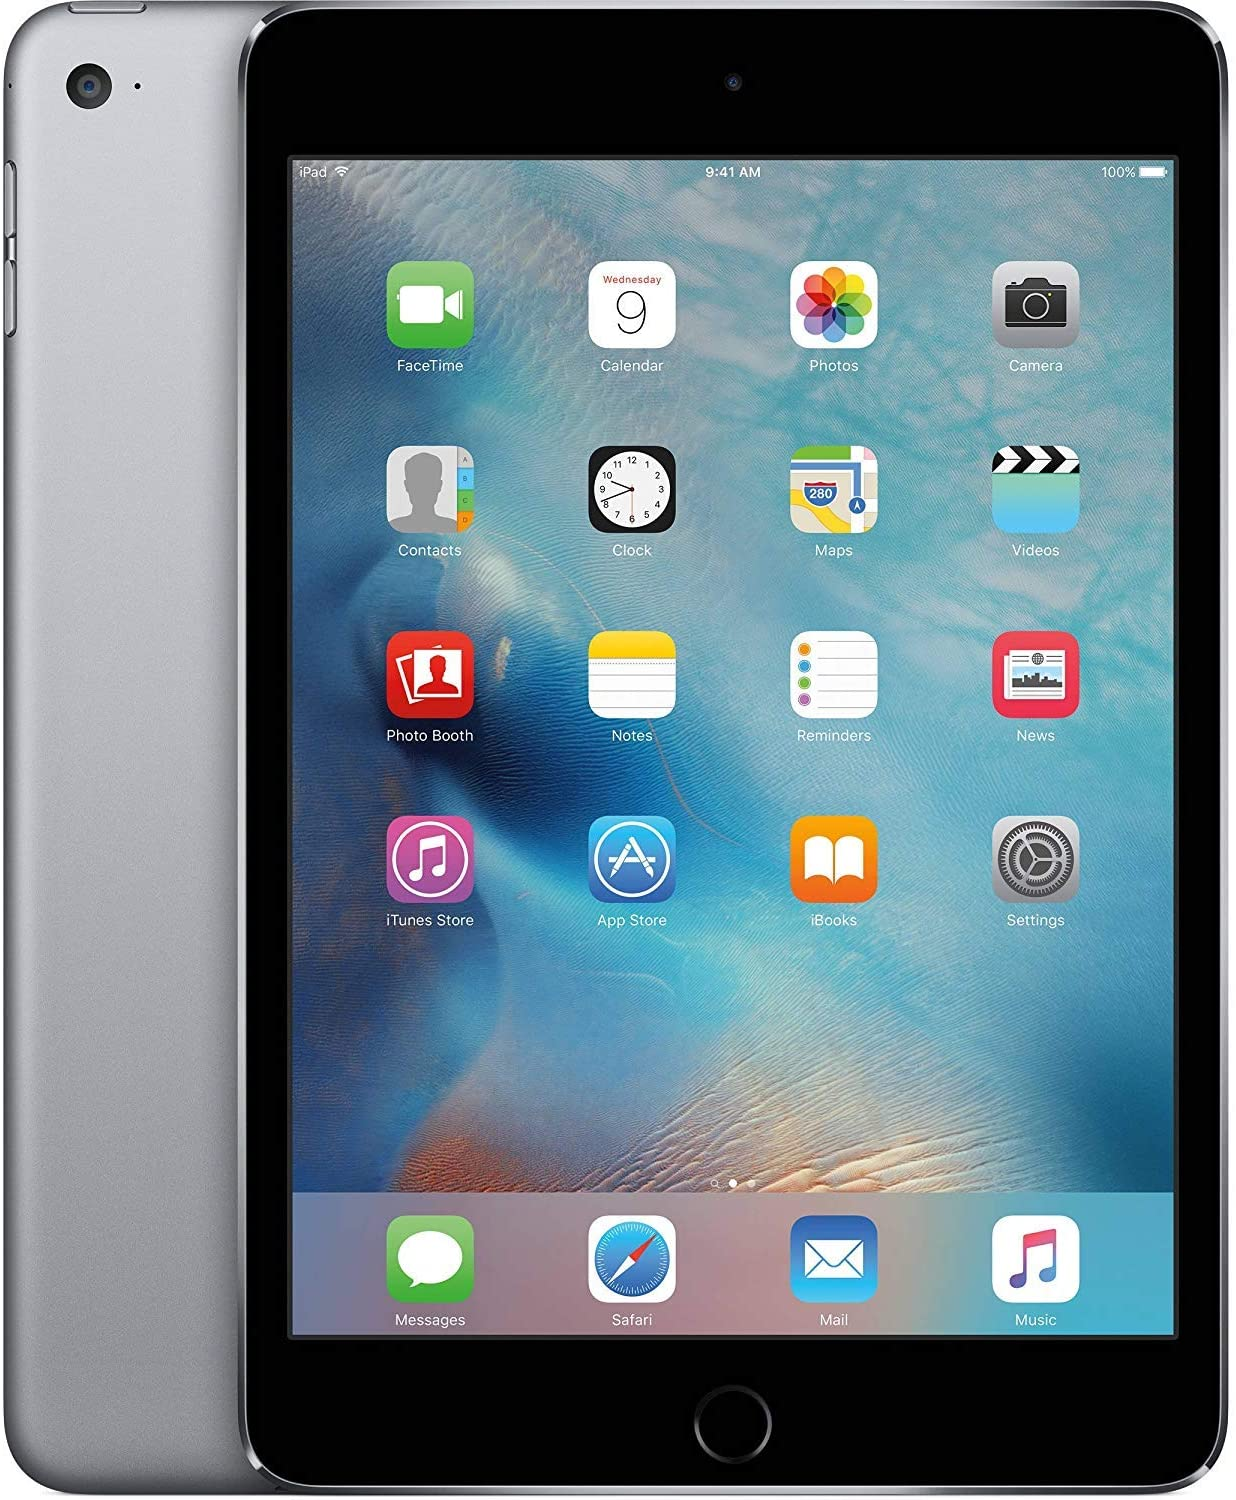 Apple iPad Mini 2 32GB Space Grey Cellular